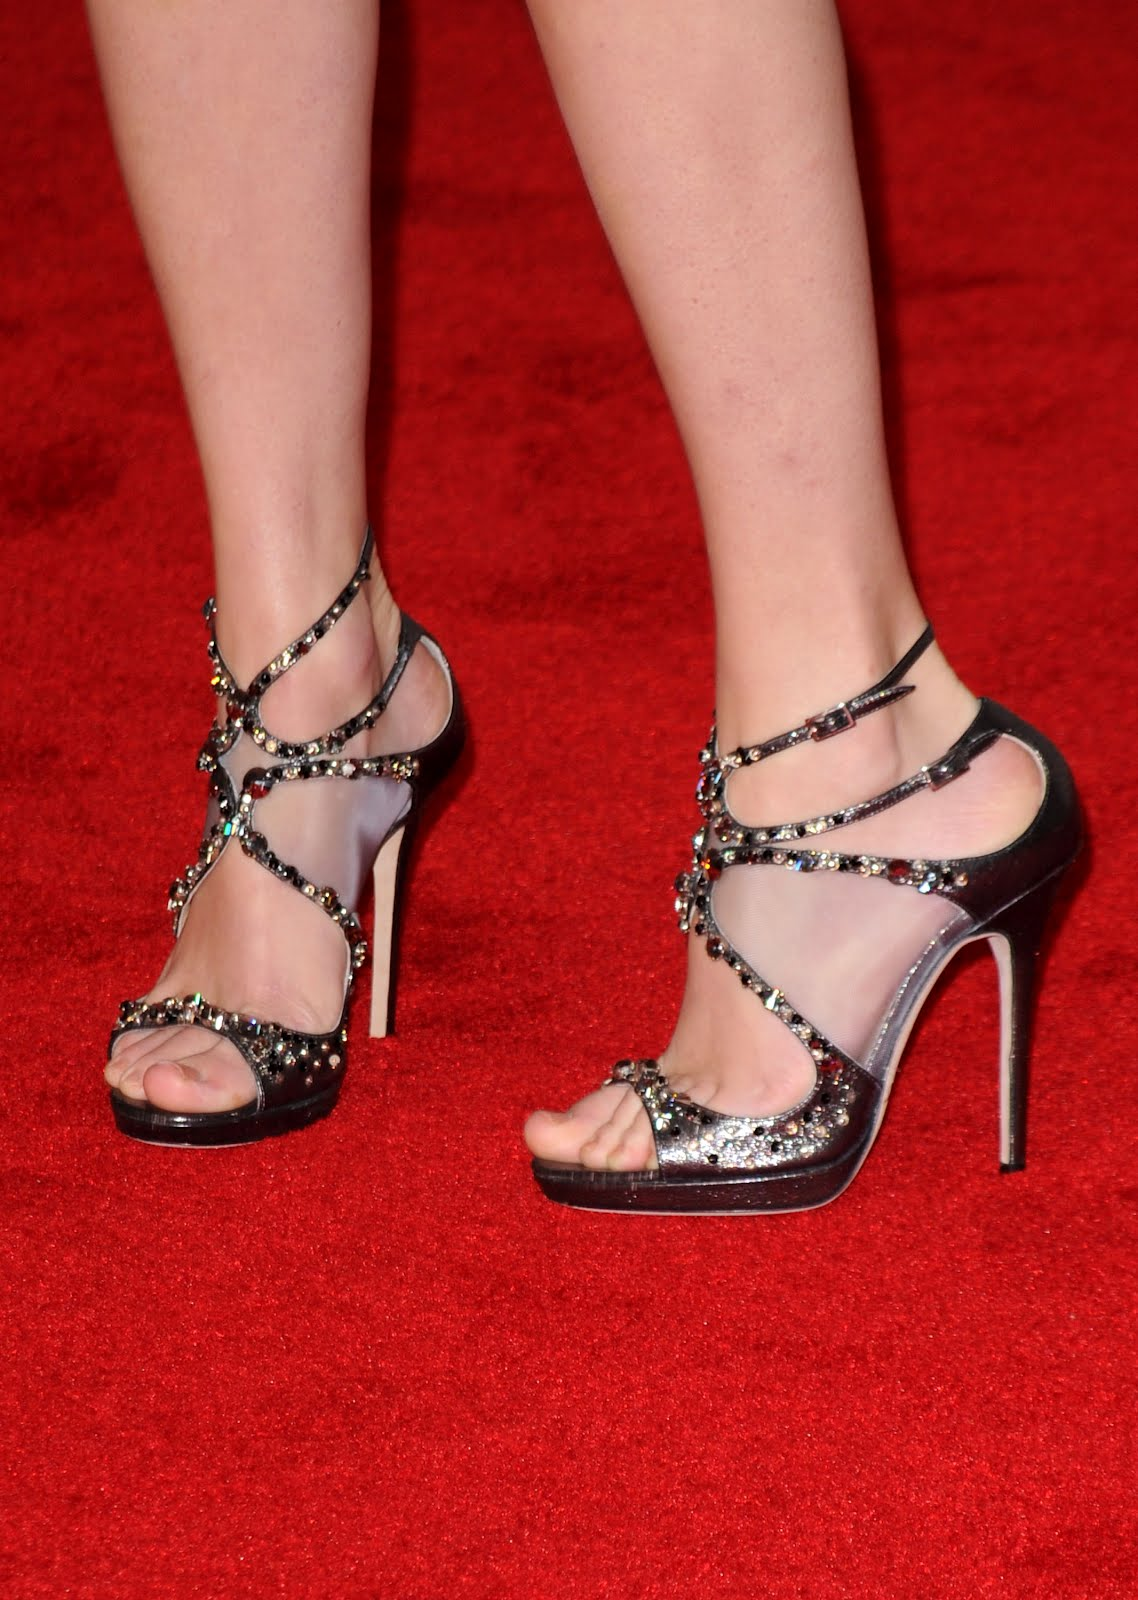 Taylor_swift_feet_006jpg